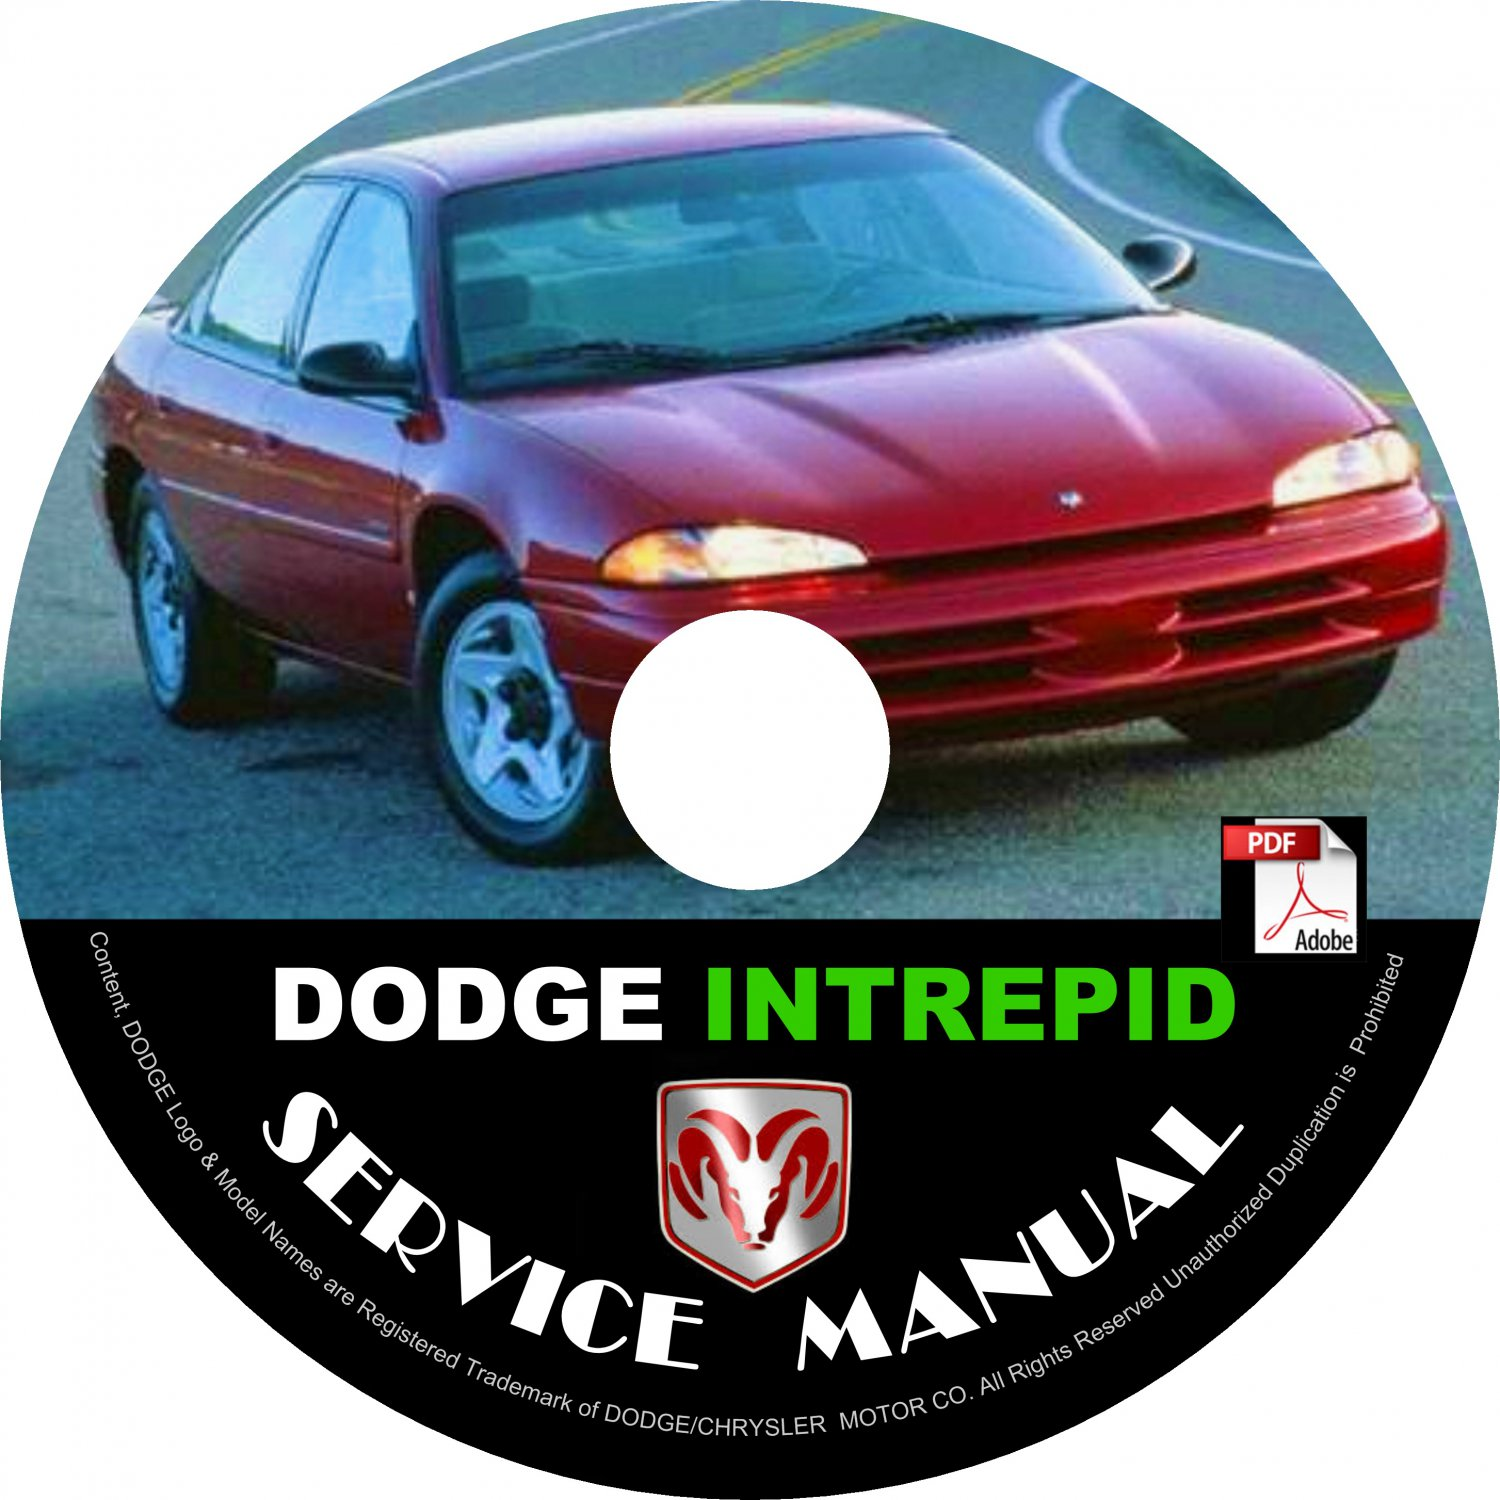 1993 Dodge Intrepid Factory Service Repair Shop Manual on CD Fix Repair Rebuilt 93 Workshop Guide